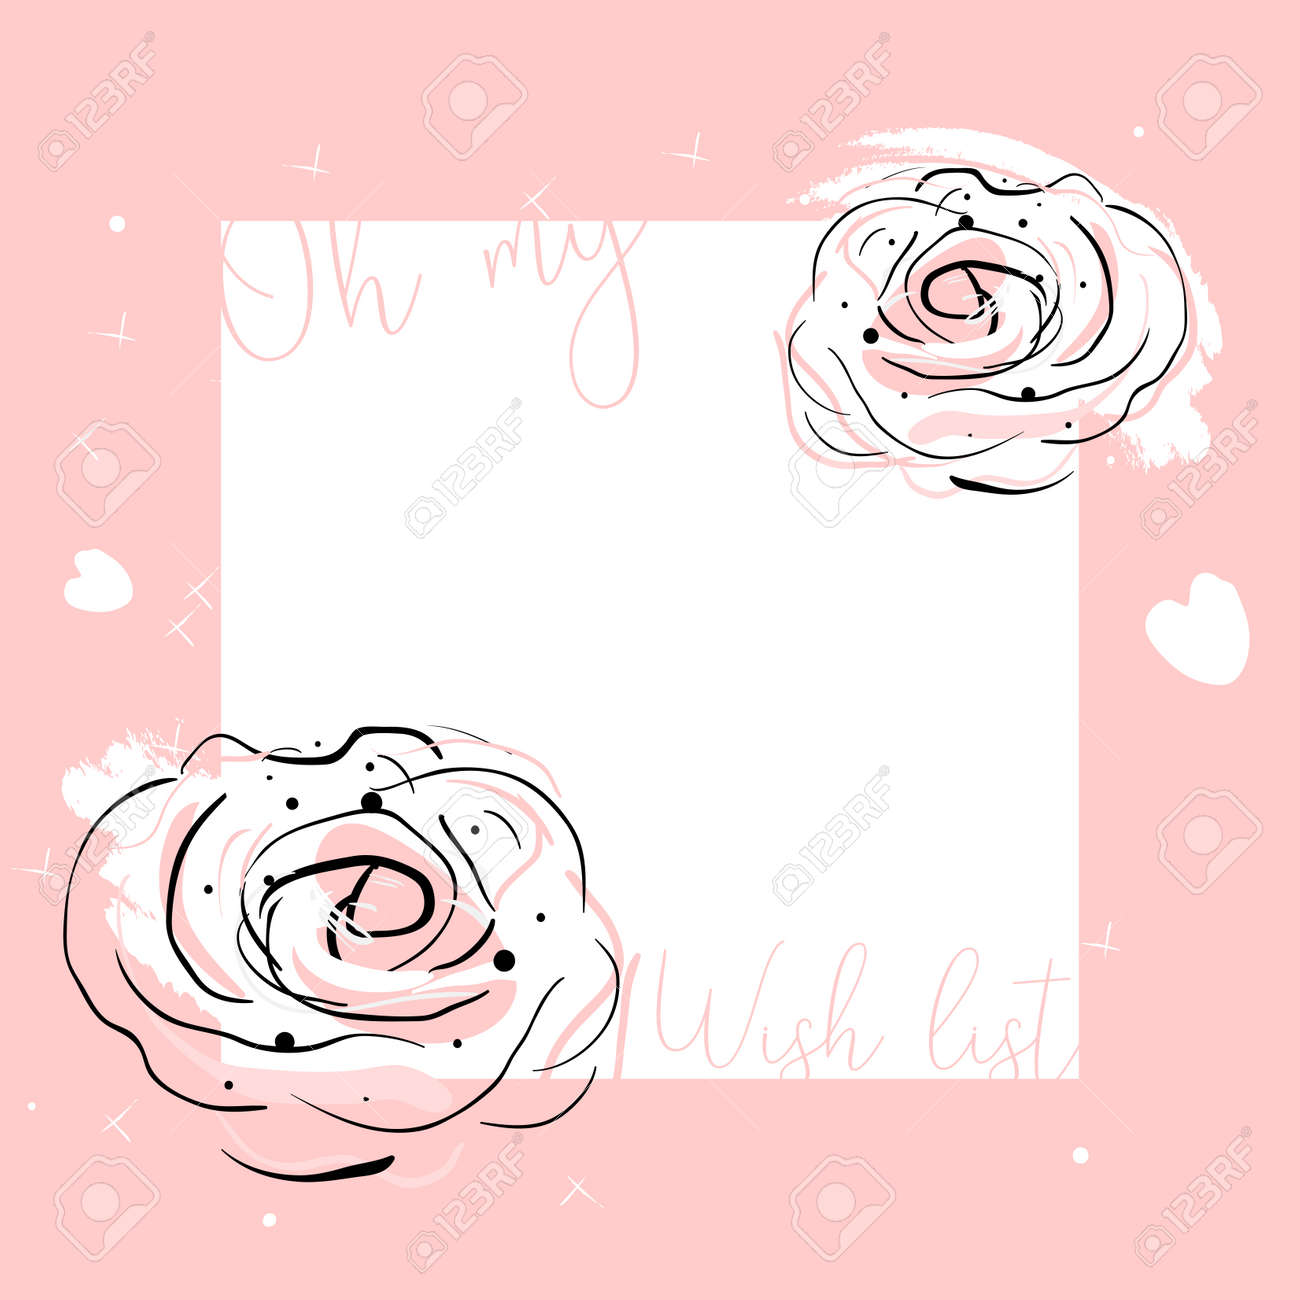 Cute girly template vector floral design. Pastel mint colored brush